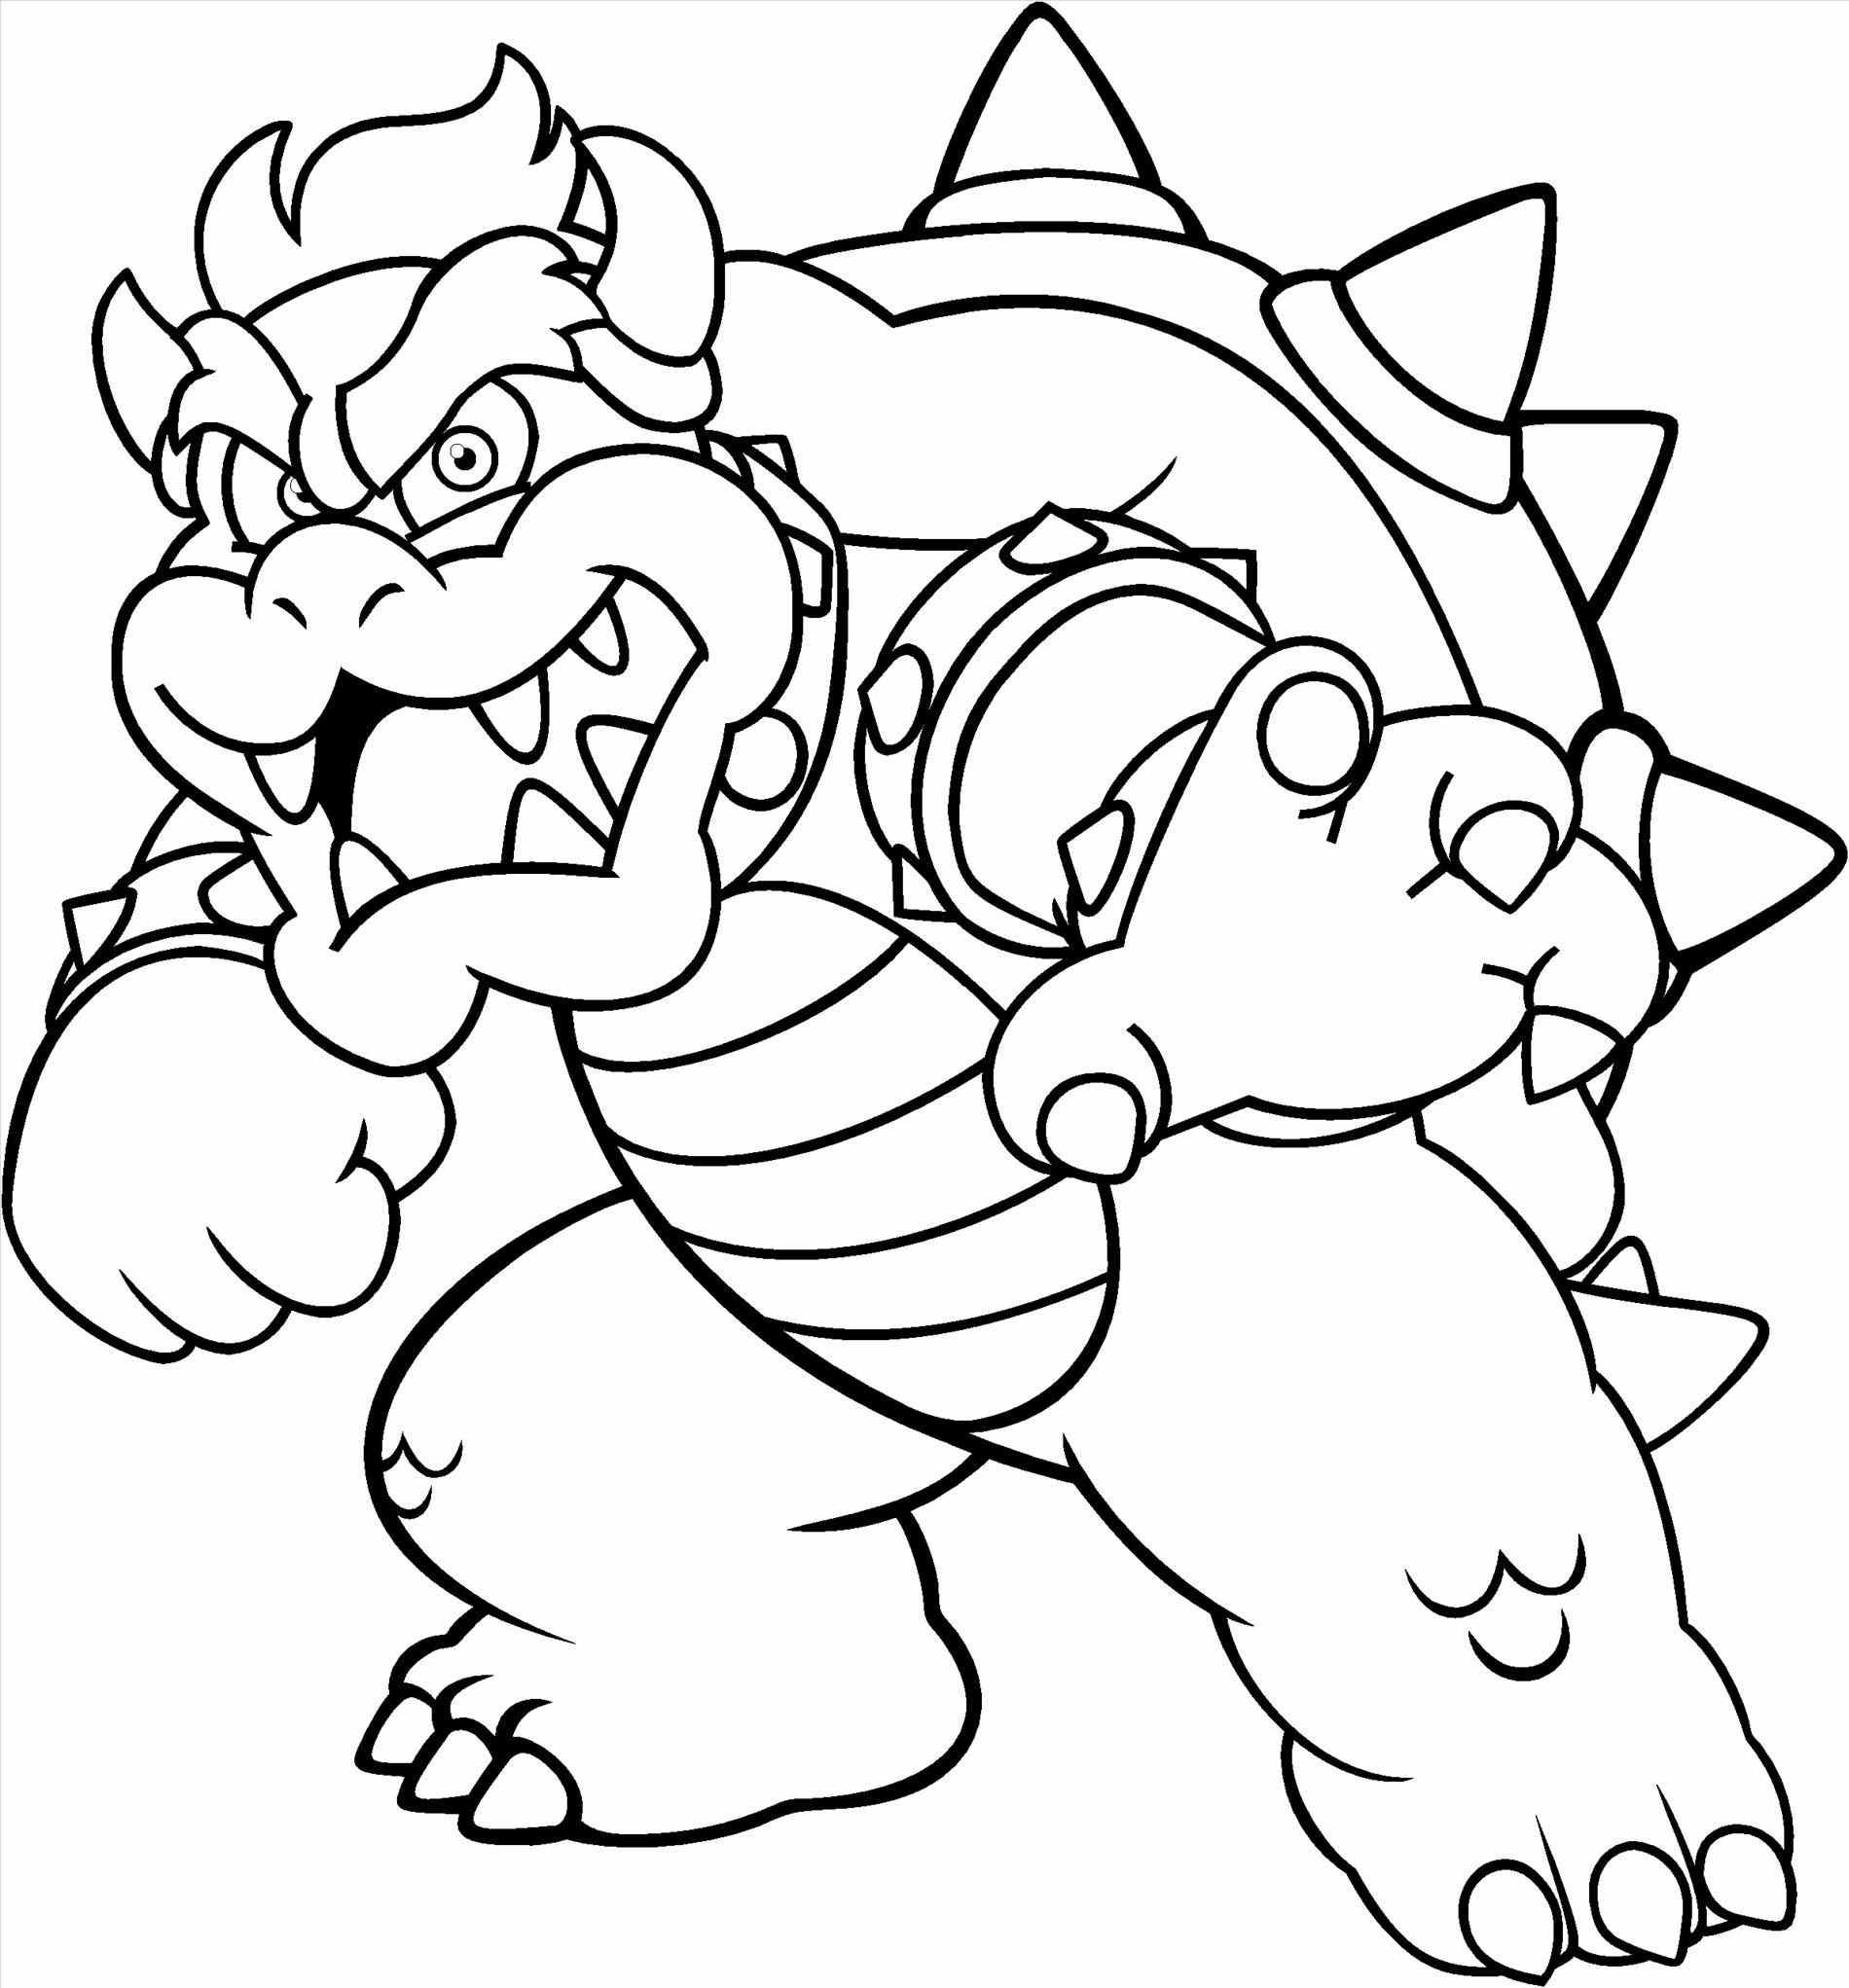 Mario And Bowser Coloring Pages To Print Monster Coloring Pages